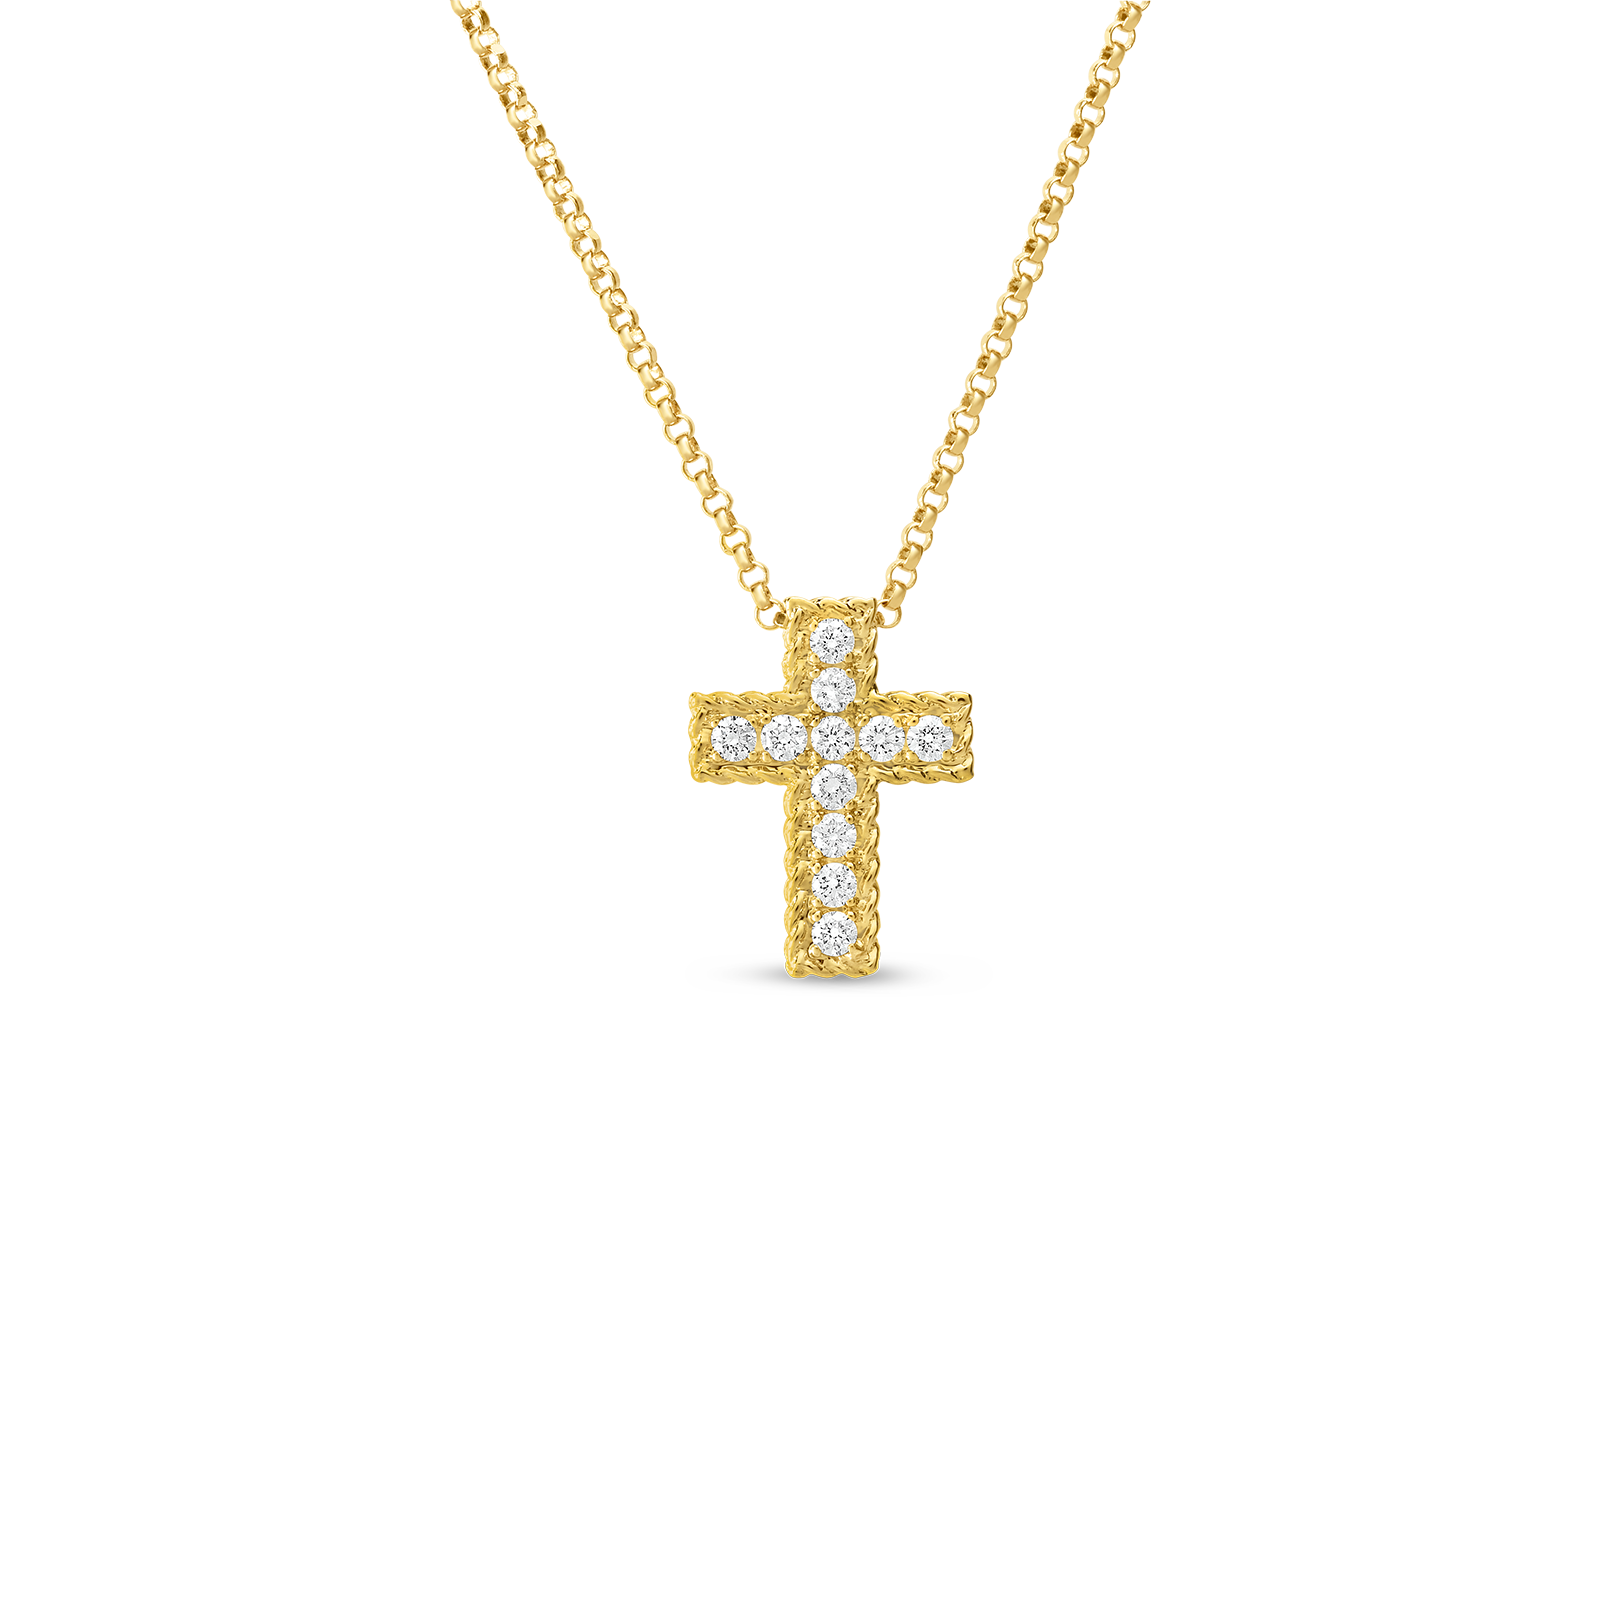 Gold cross necklace png. New barocco diamond dcros